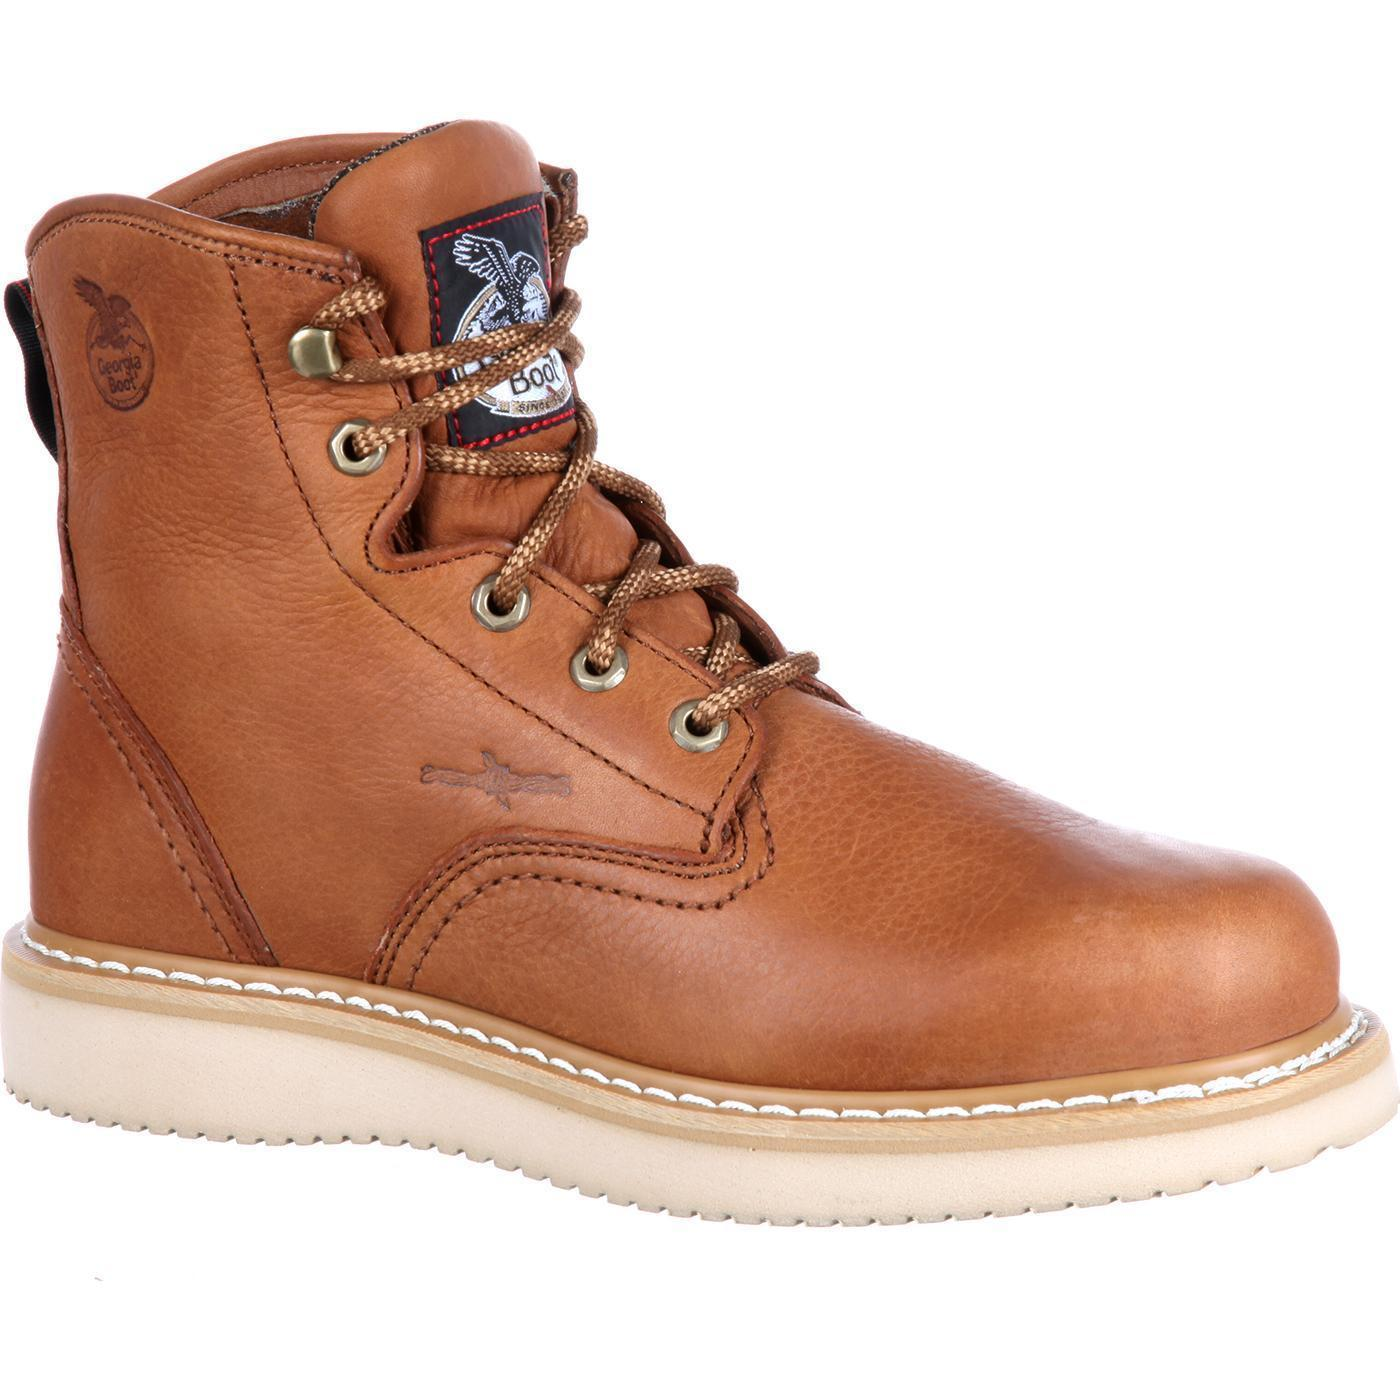 """Georgia G6152 6/"""" Lace Up Wedge Sole Farm /& Ranch Chemical Resistant Work Boots"""